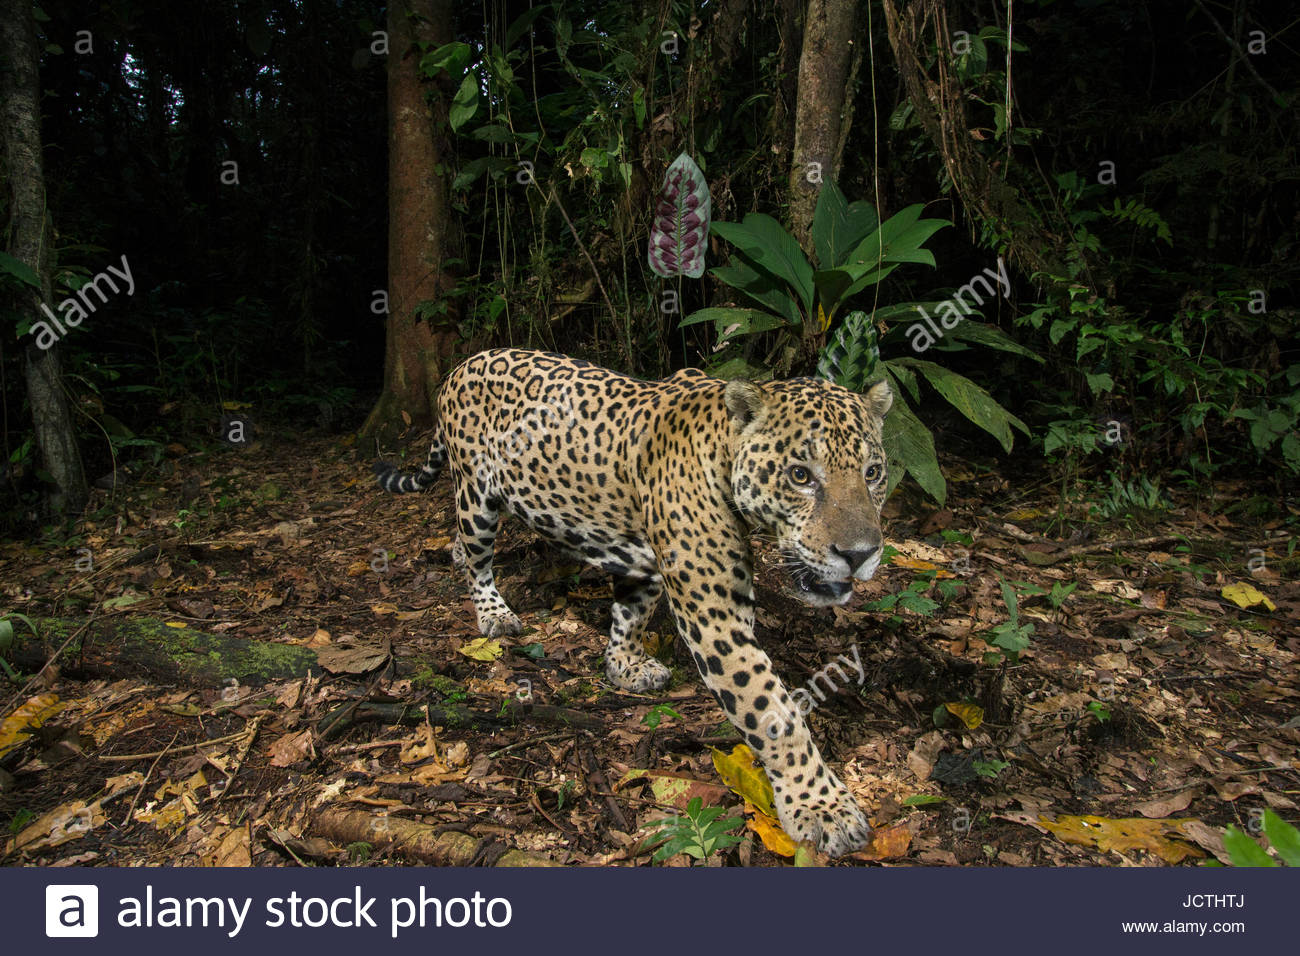 A remote camera captures an adult jaguar in Manu National Park. - Stock Image